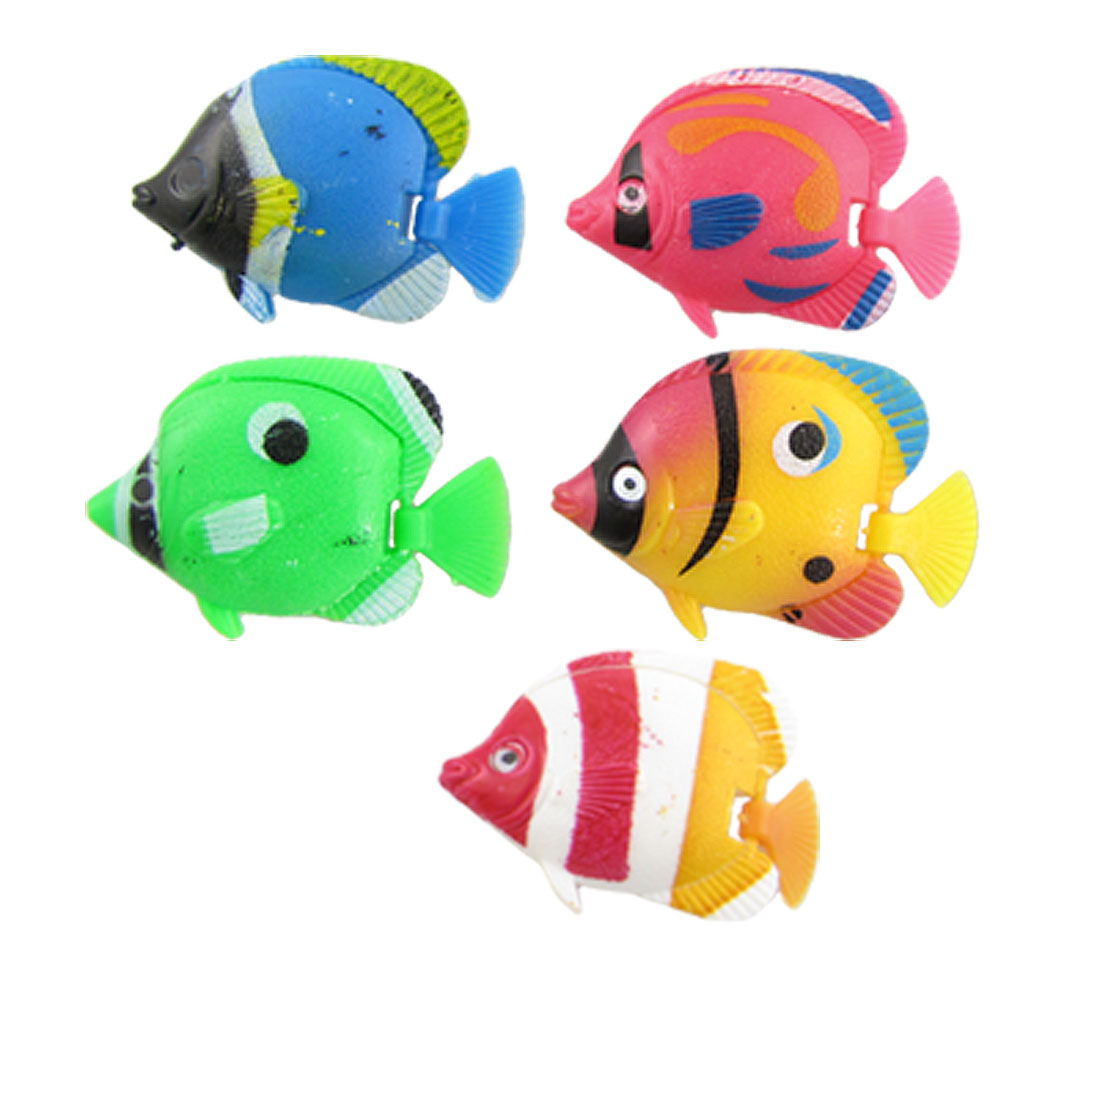 5 Pcs Assorted Color Plastic Fish for Aquarium Decoration